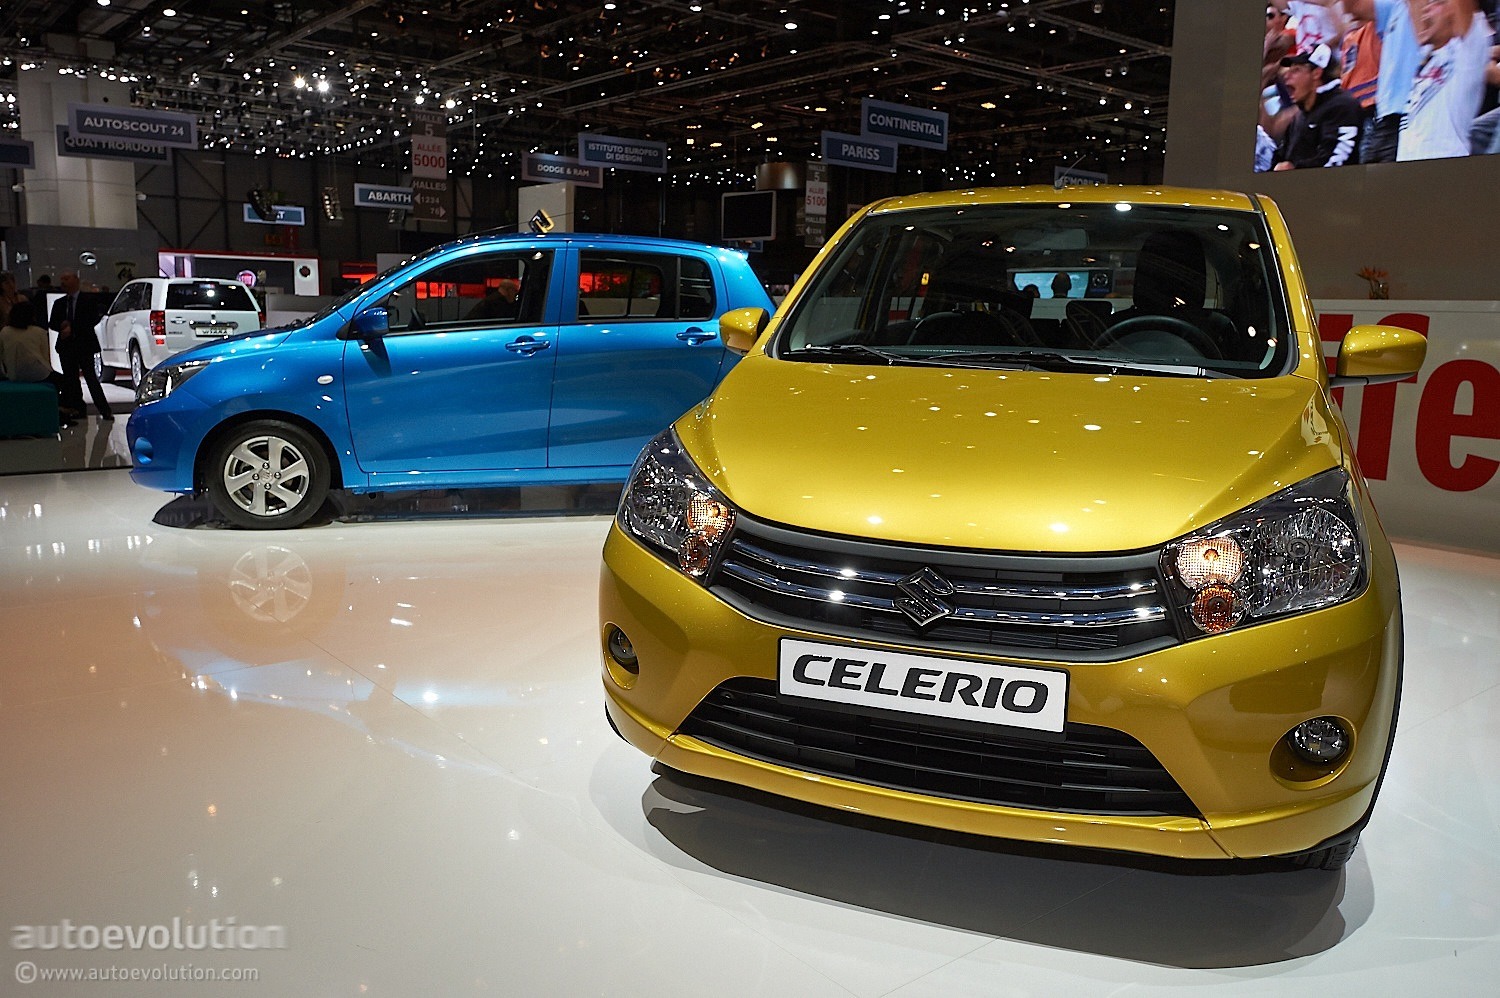 suzuki celerio promises 85 g km thanks to dual injection system live photos autoevolution. Black Bedroom Furniture Sets. Home Design Ideas